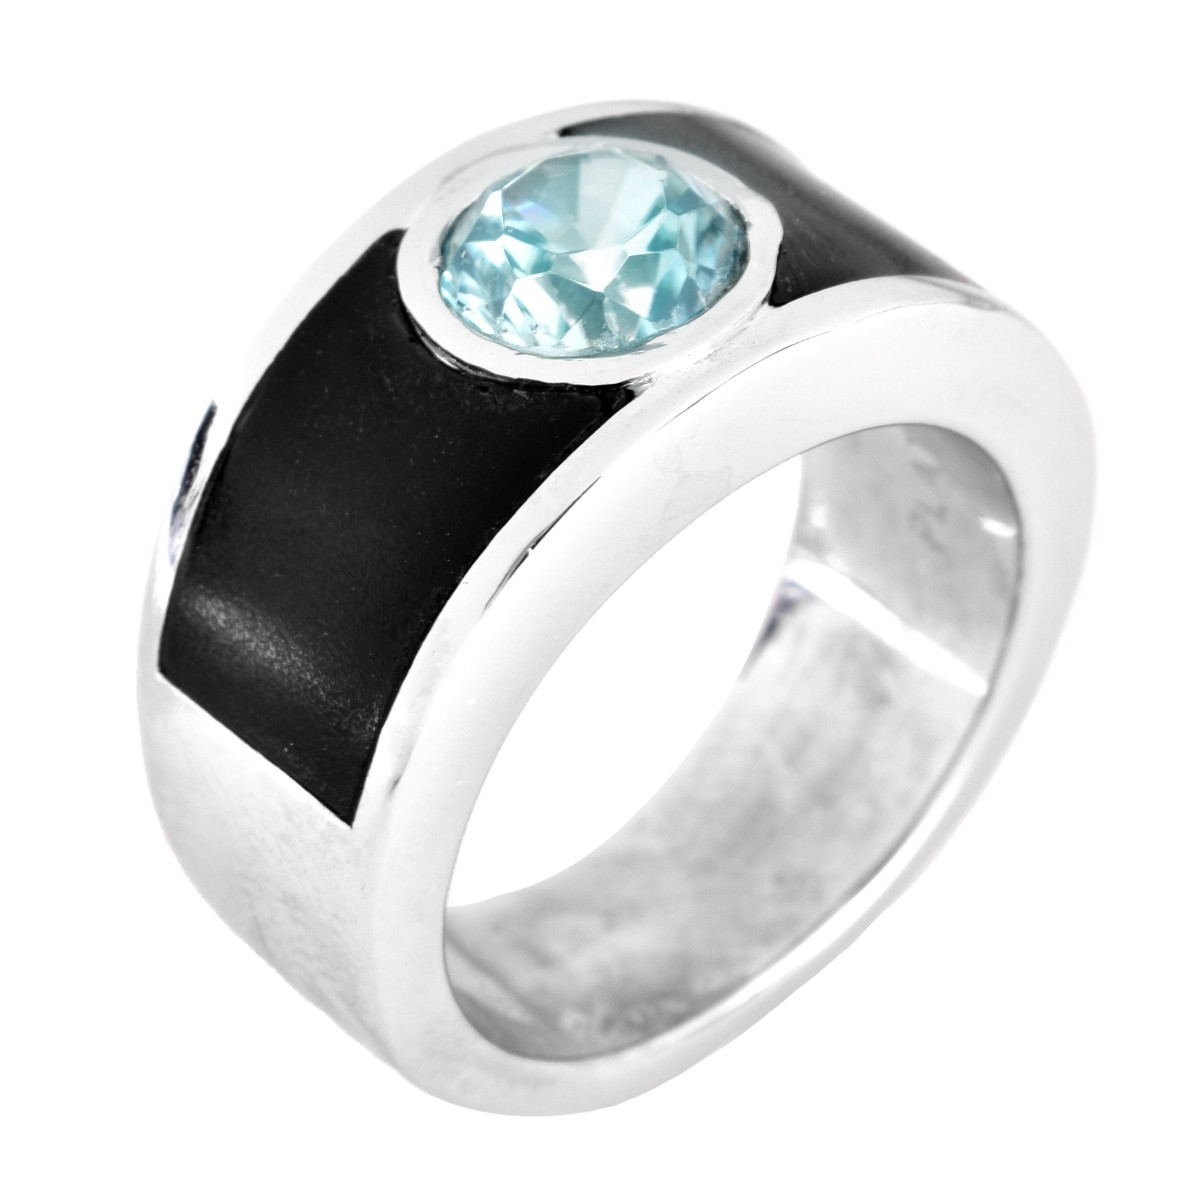 Man's Platinum, Coral and Blue Zircon Ring